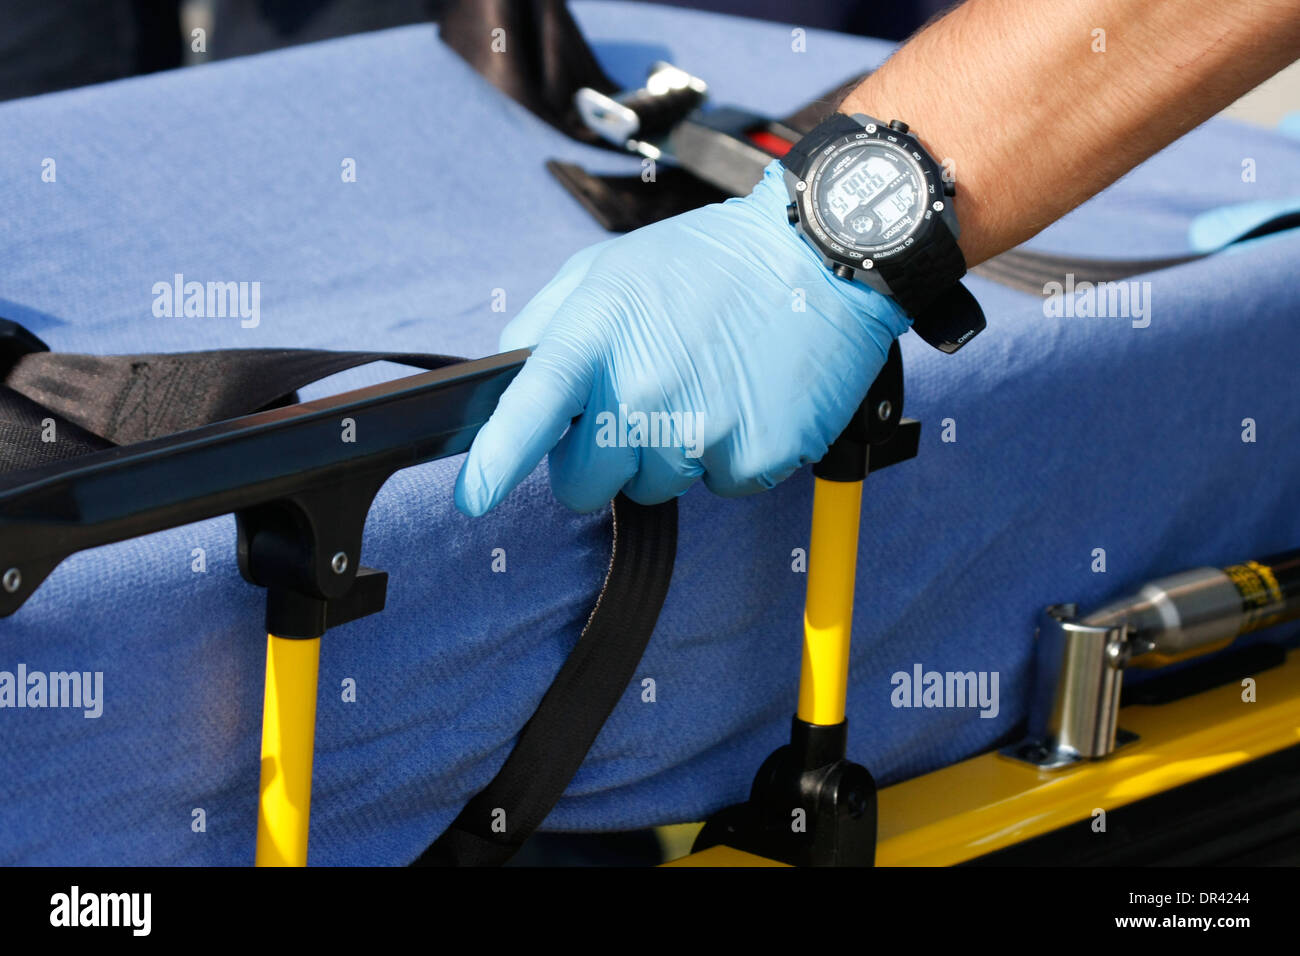 An EMT hand on a medical transport cot - Stock Image